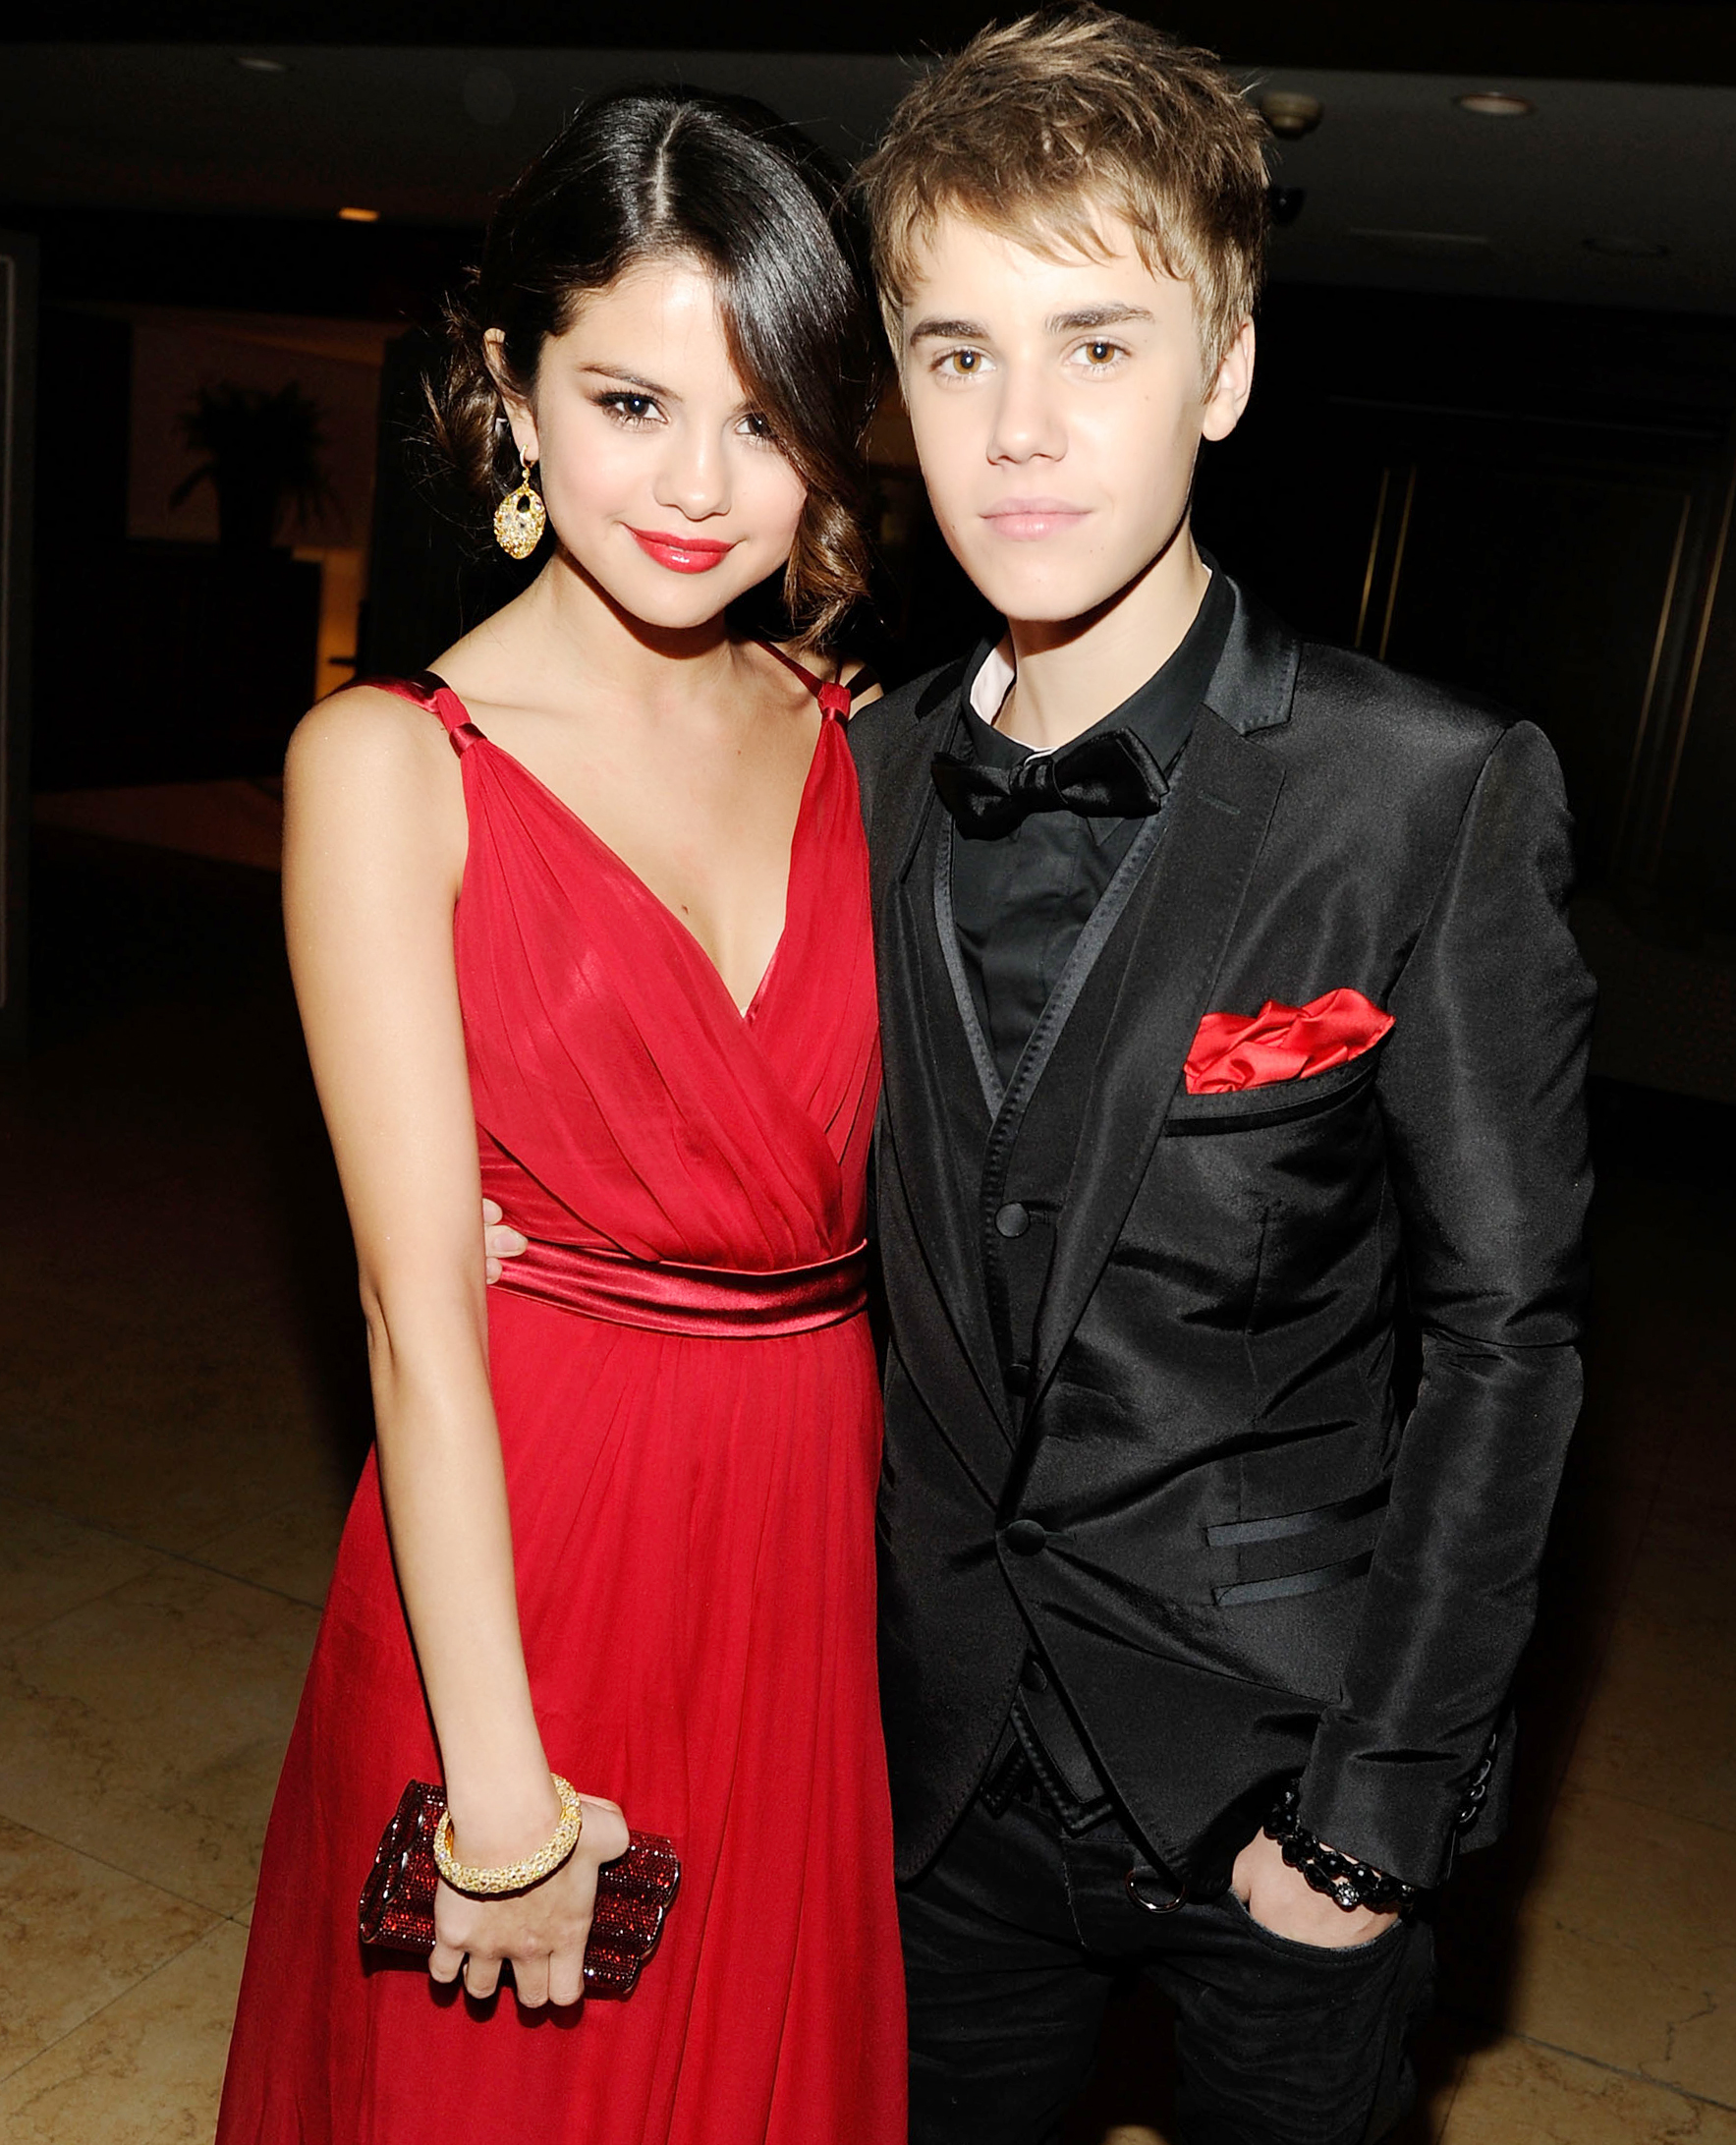 Justin Bieber and Selena Gomez Didn't Spend Thanksgiving Together, and the Reason Makes Total Sense